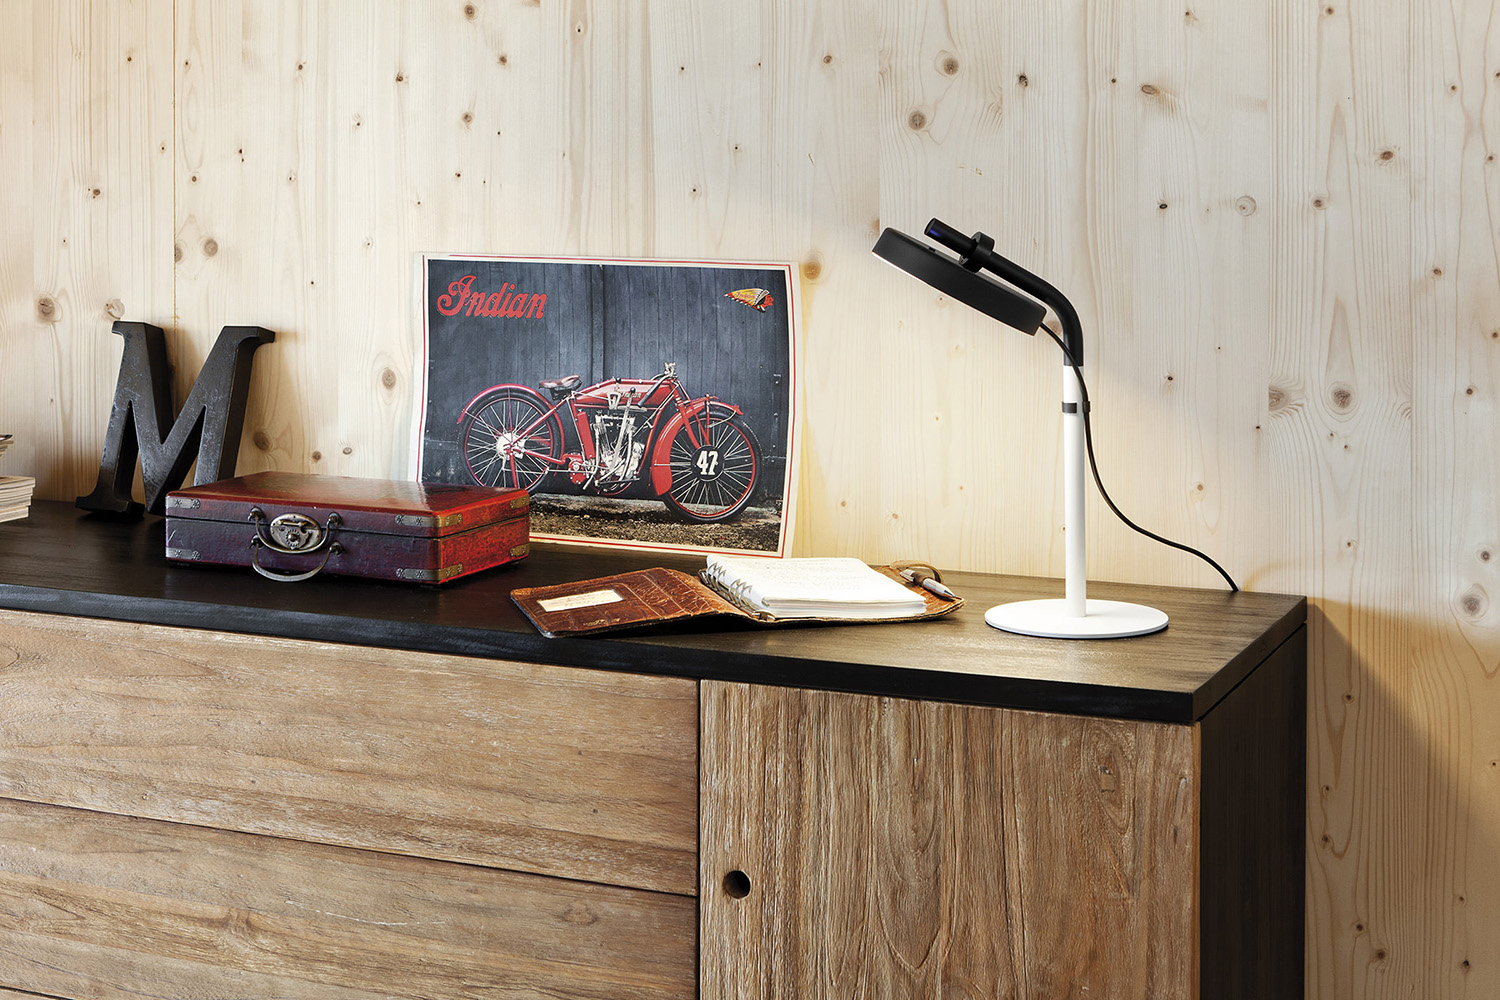 More information of Estiluz ARO table lamp